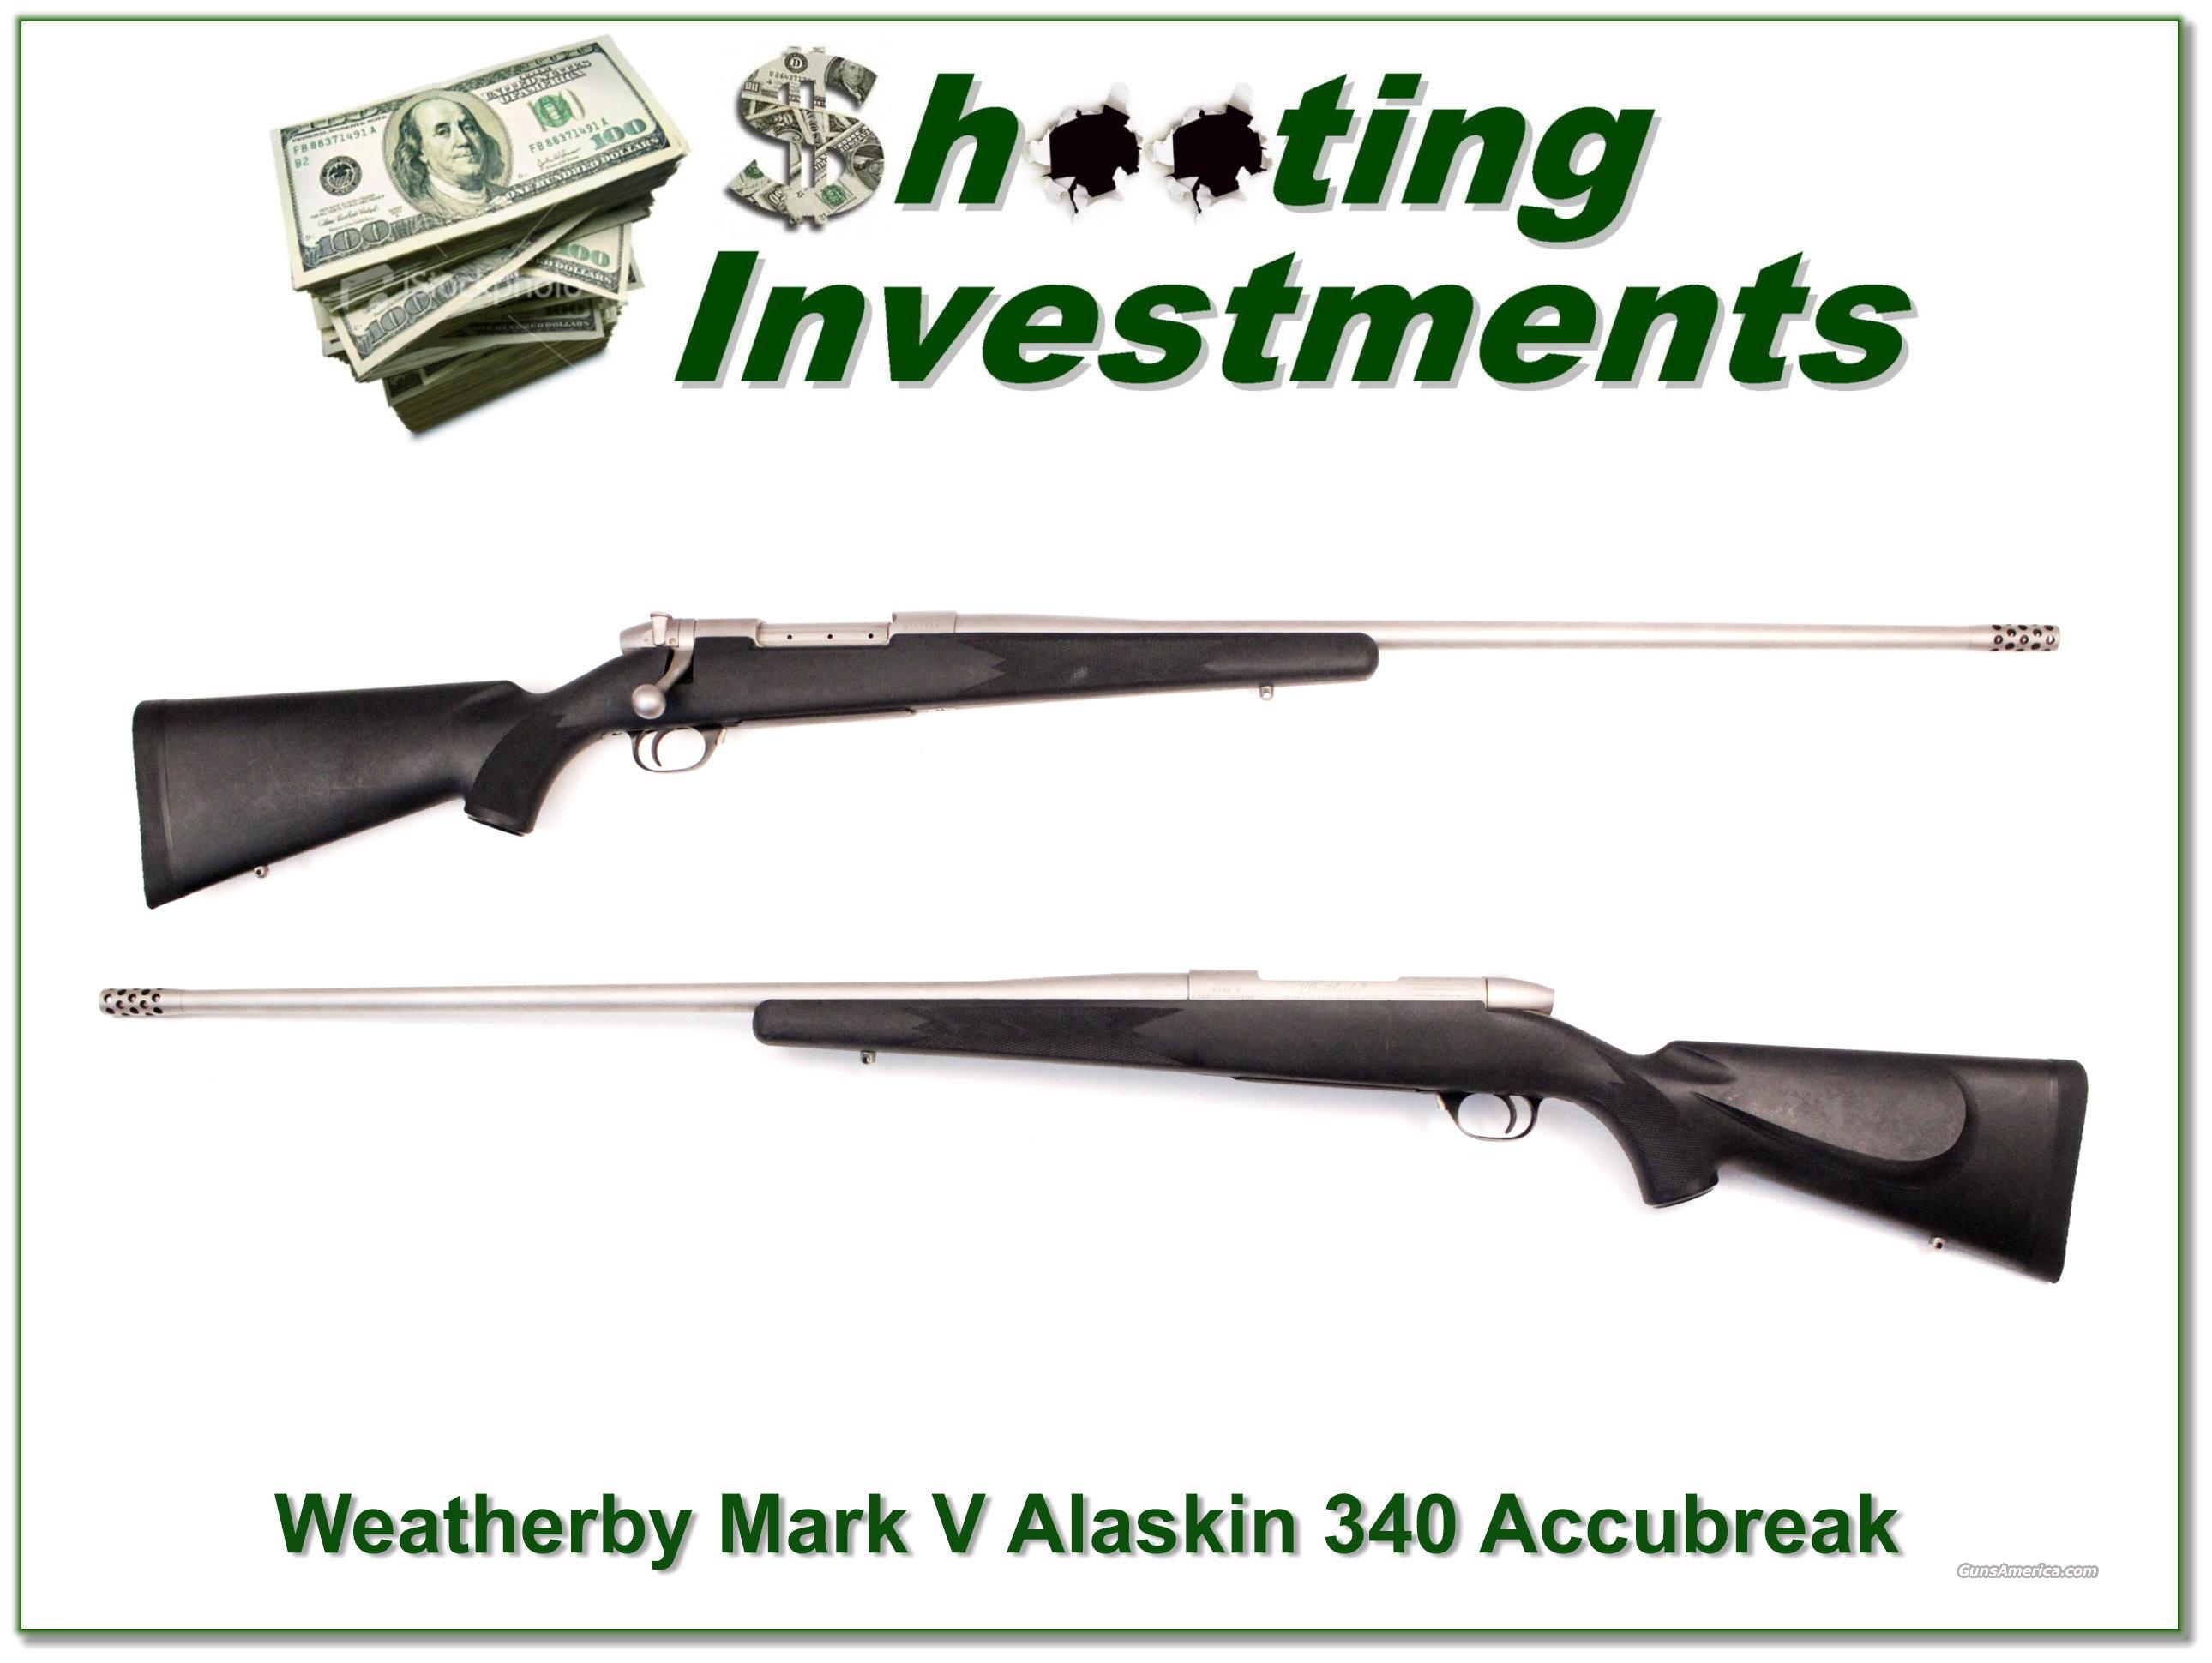 Weatherby Mark V Alaskan 340 Wthy Mag with accu-break  Guns > Rifles > Weatherby Rifles > Sporting